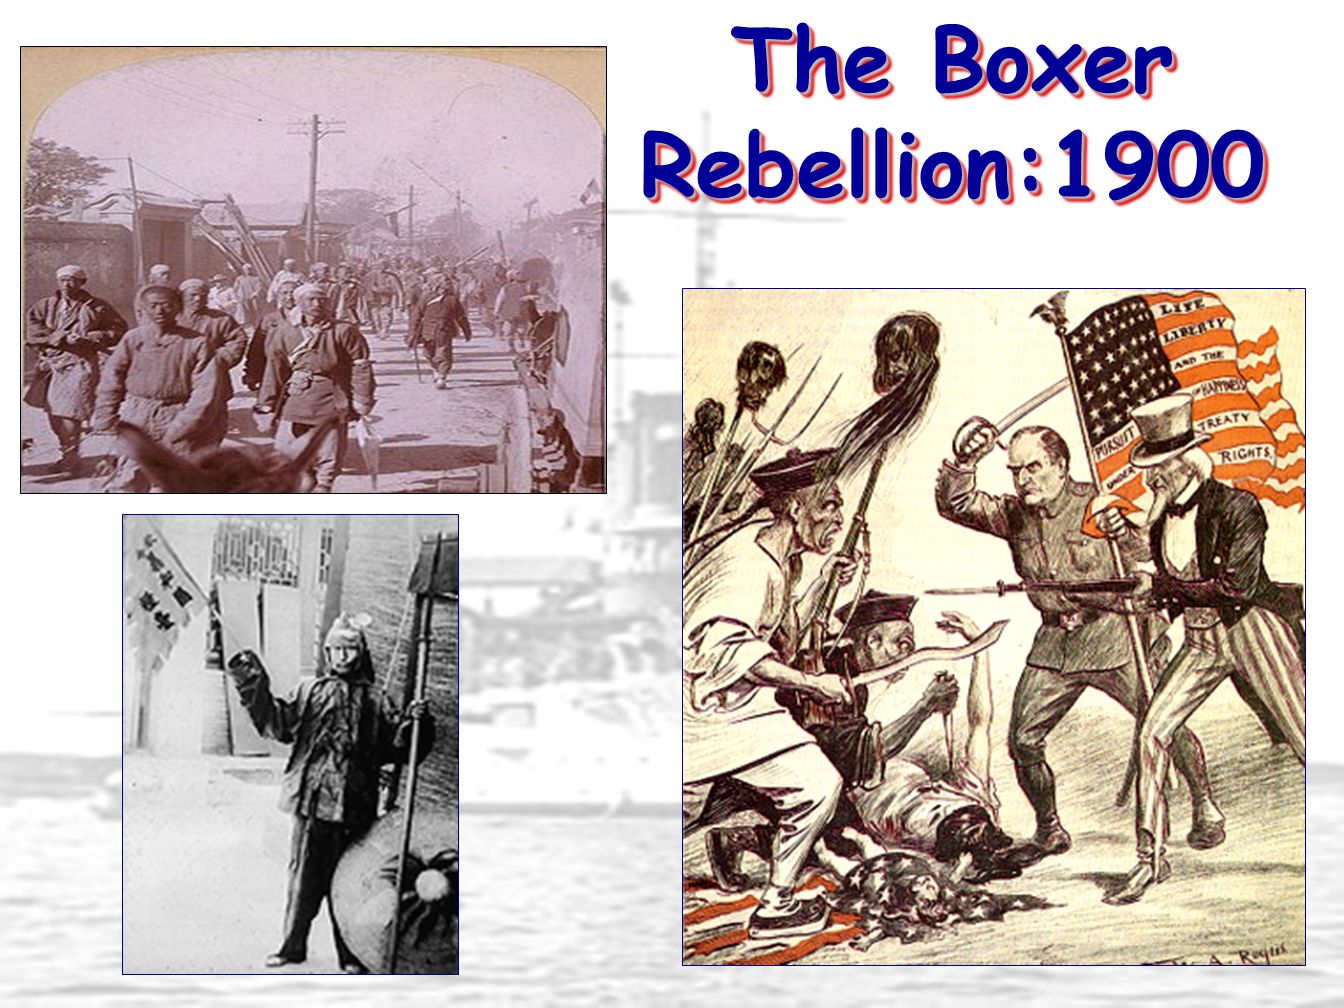 The Boxer Rebellion:1900